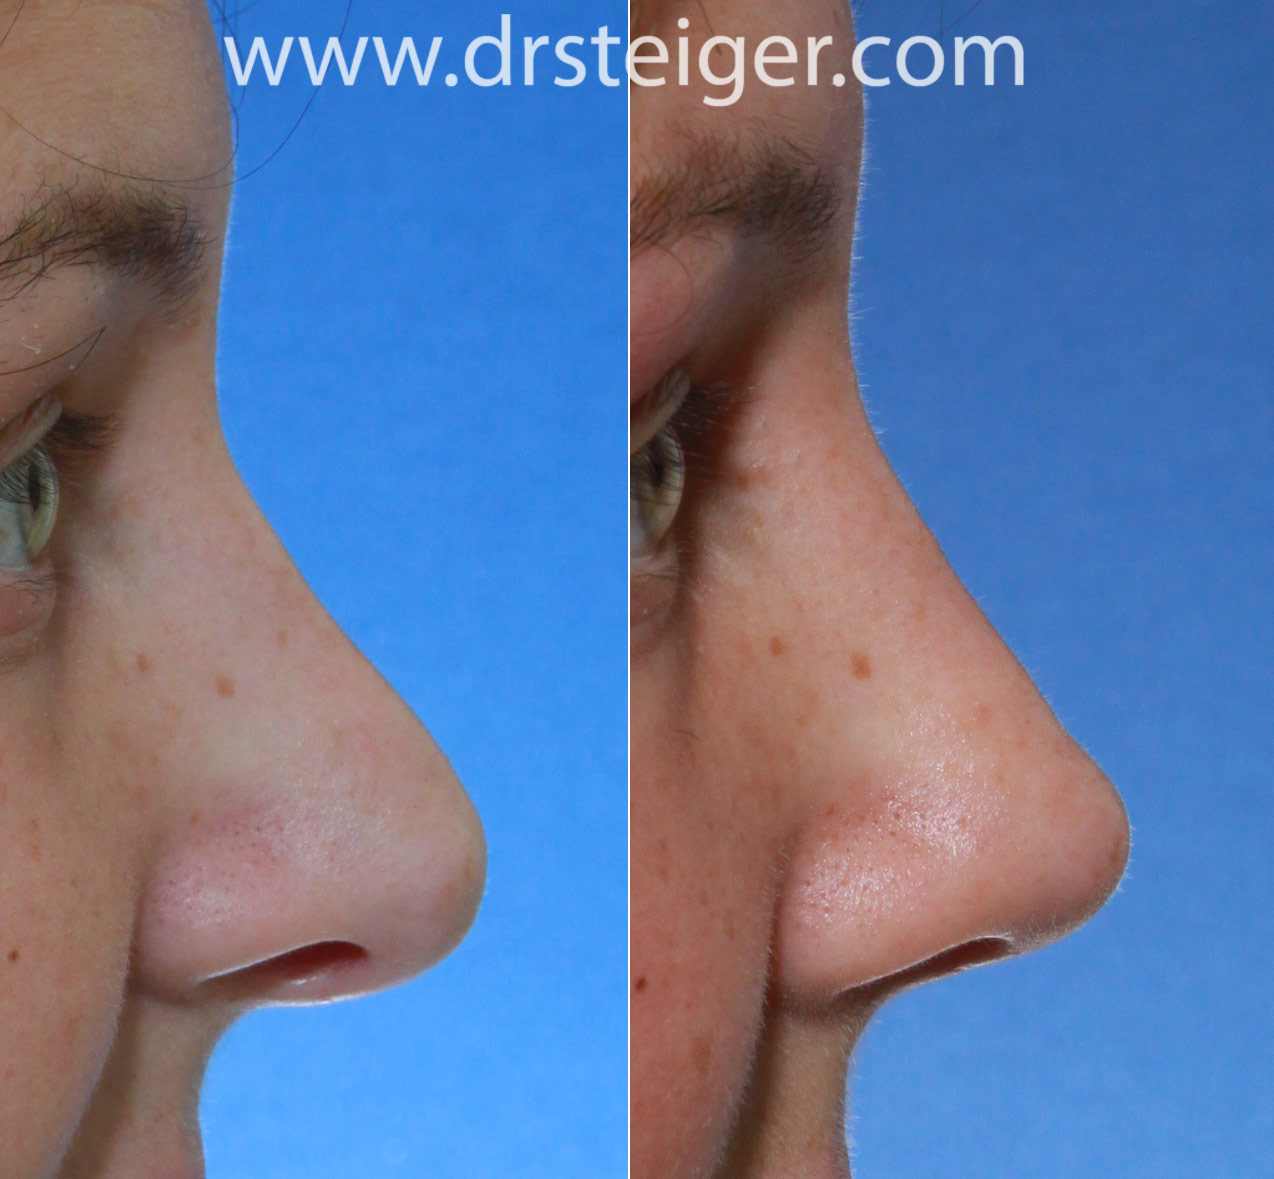 revision rhinoplasty to lift the nasal tip